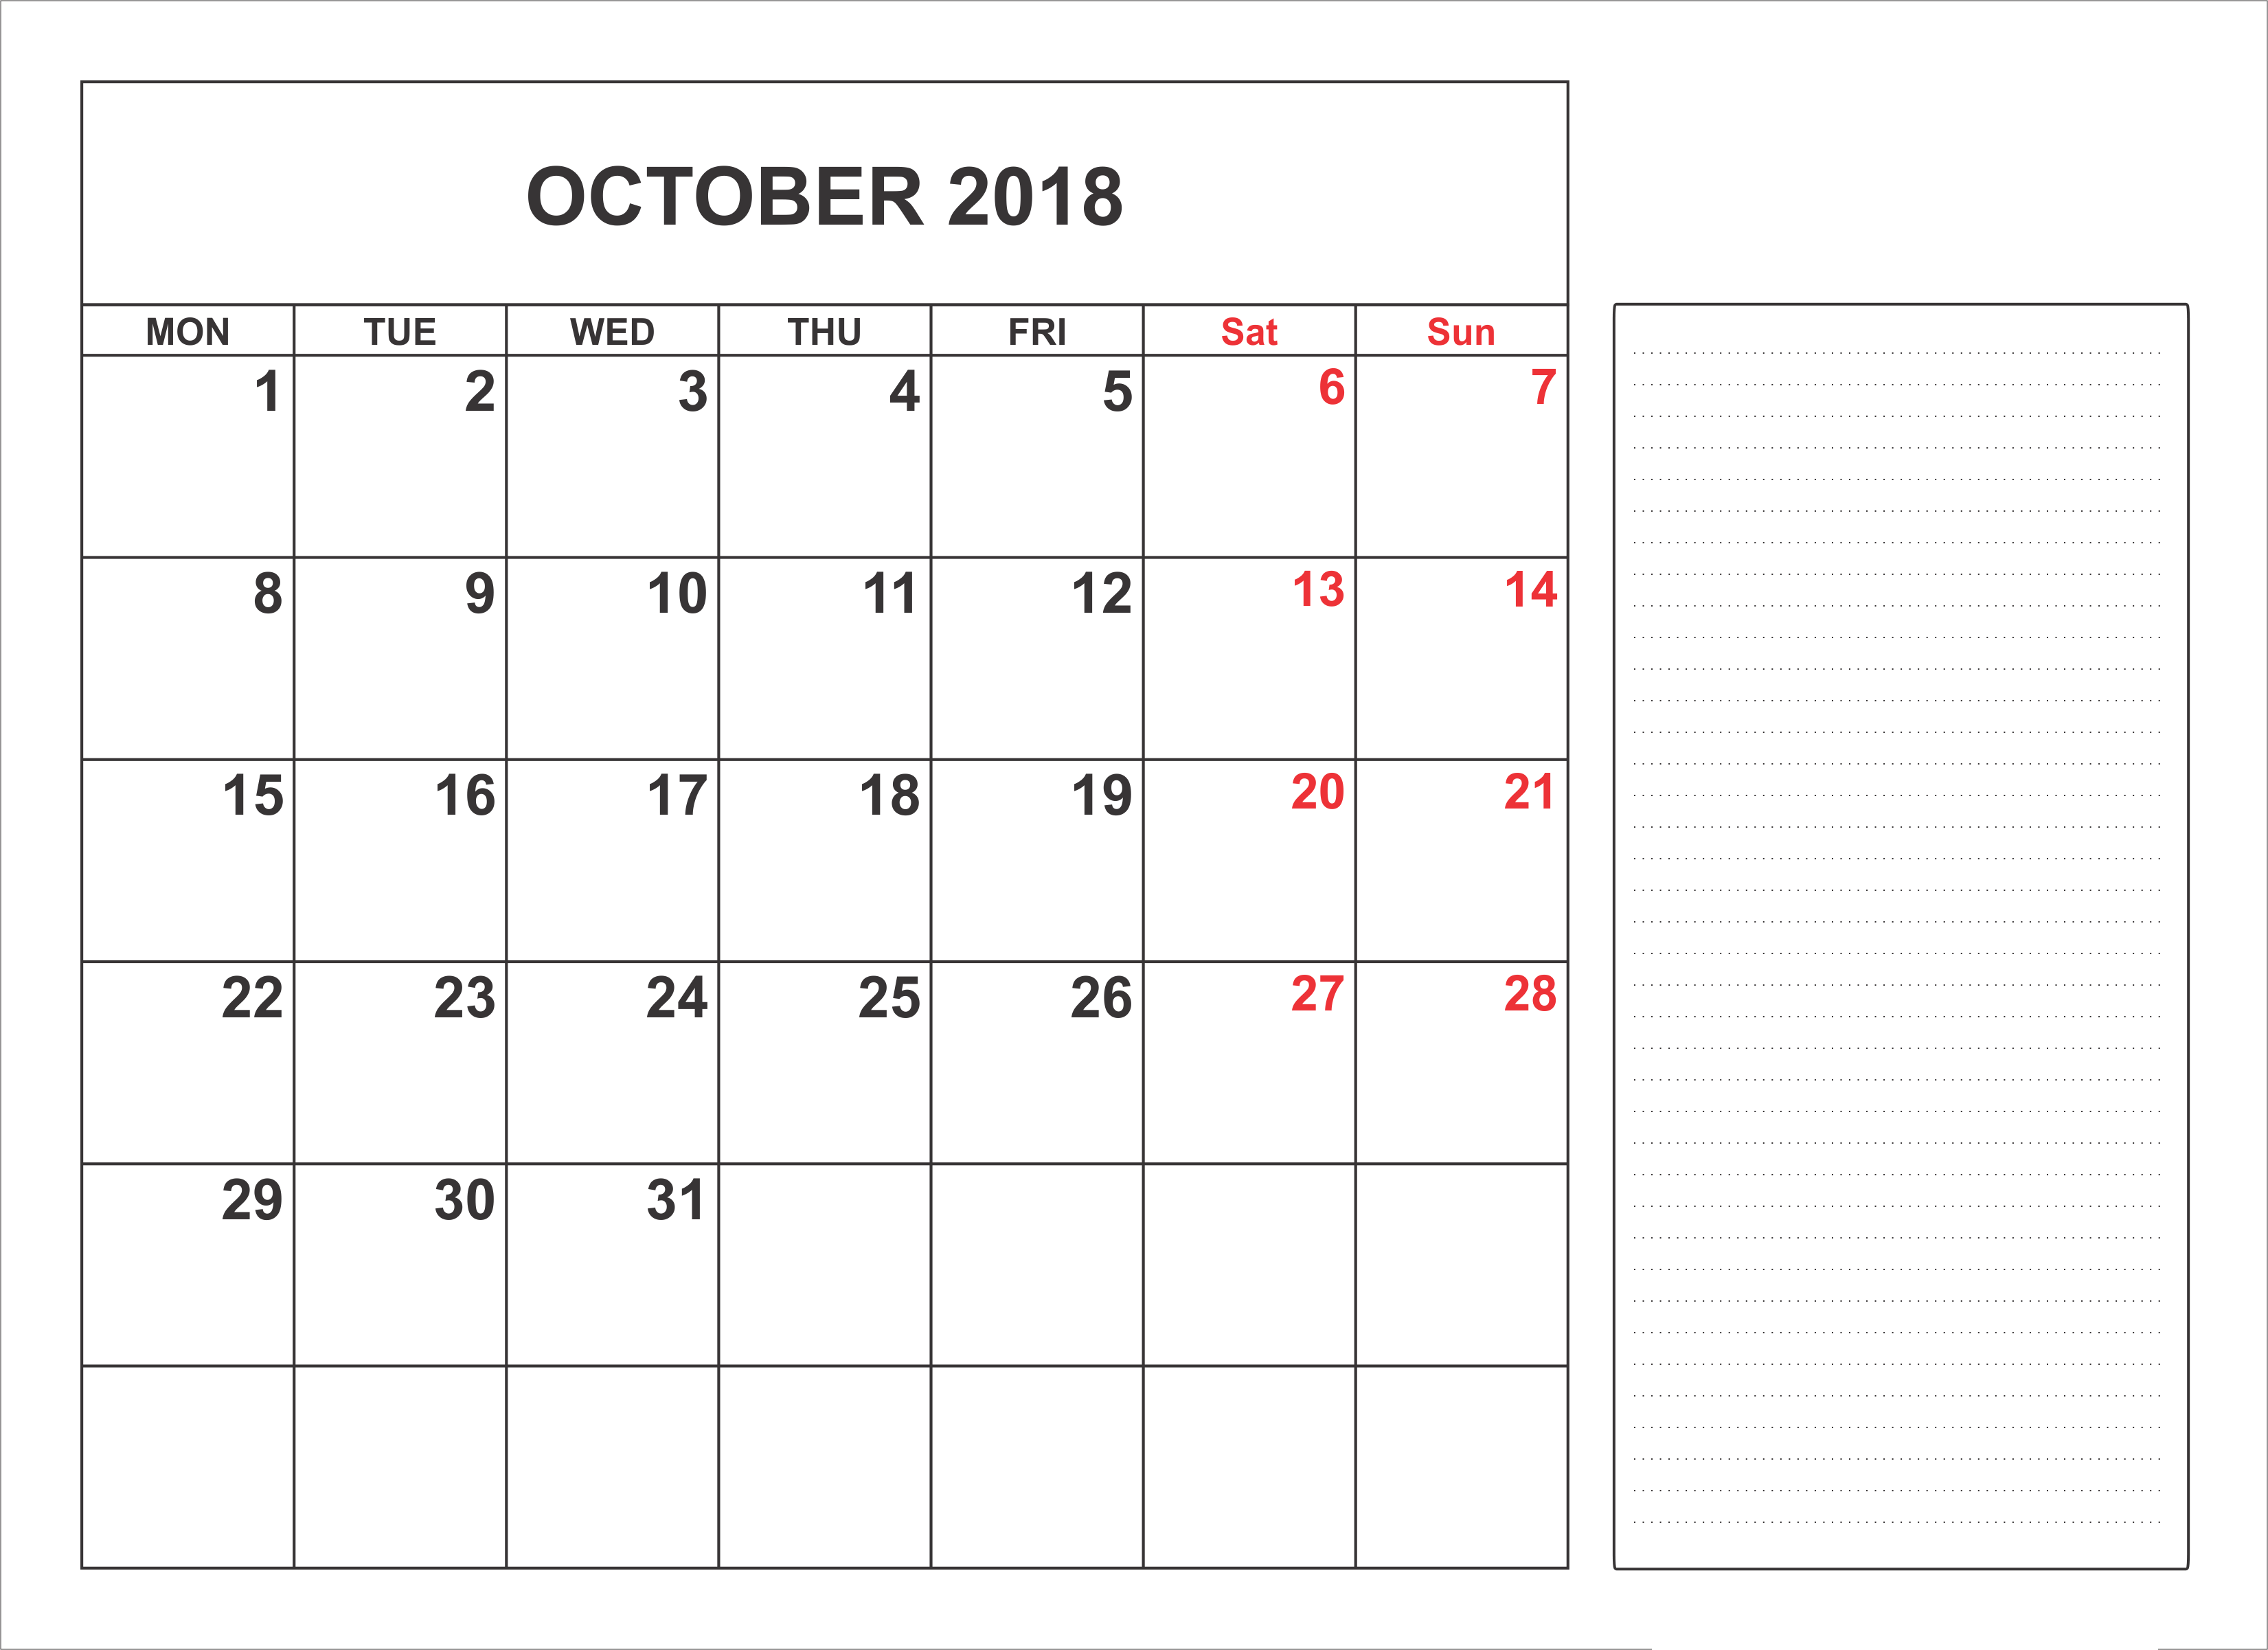 october 2018 calendar with holidays full october 2018 calendar with holidays notes full